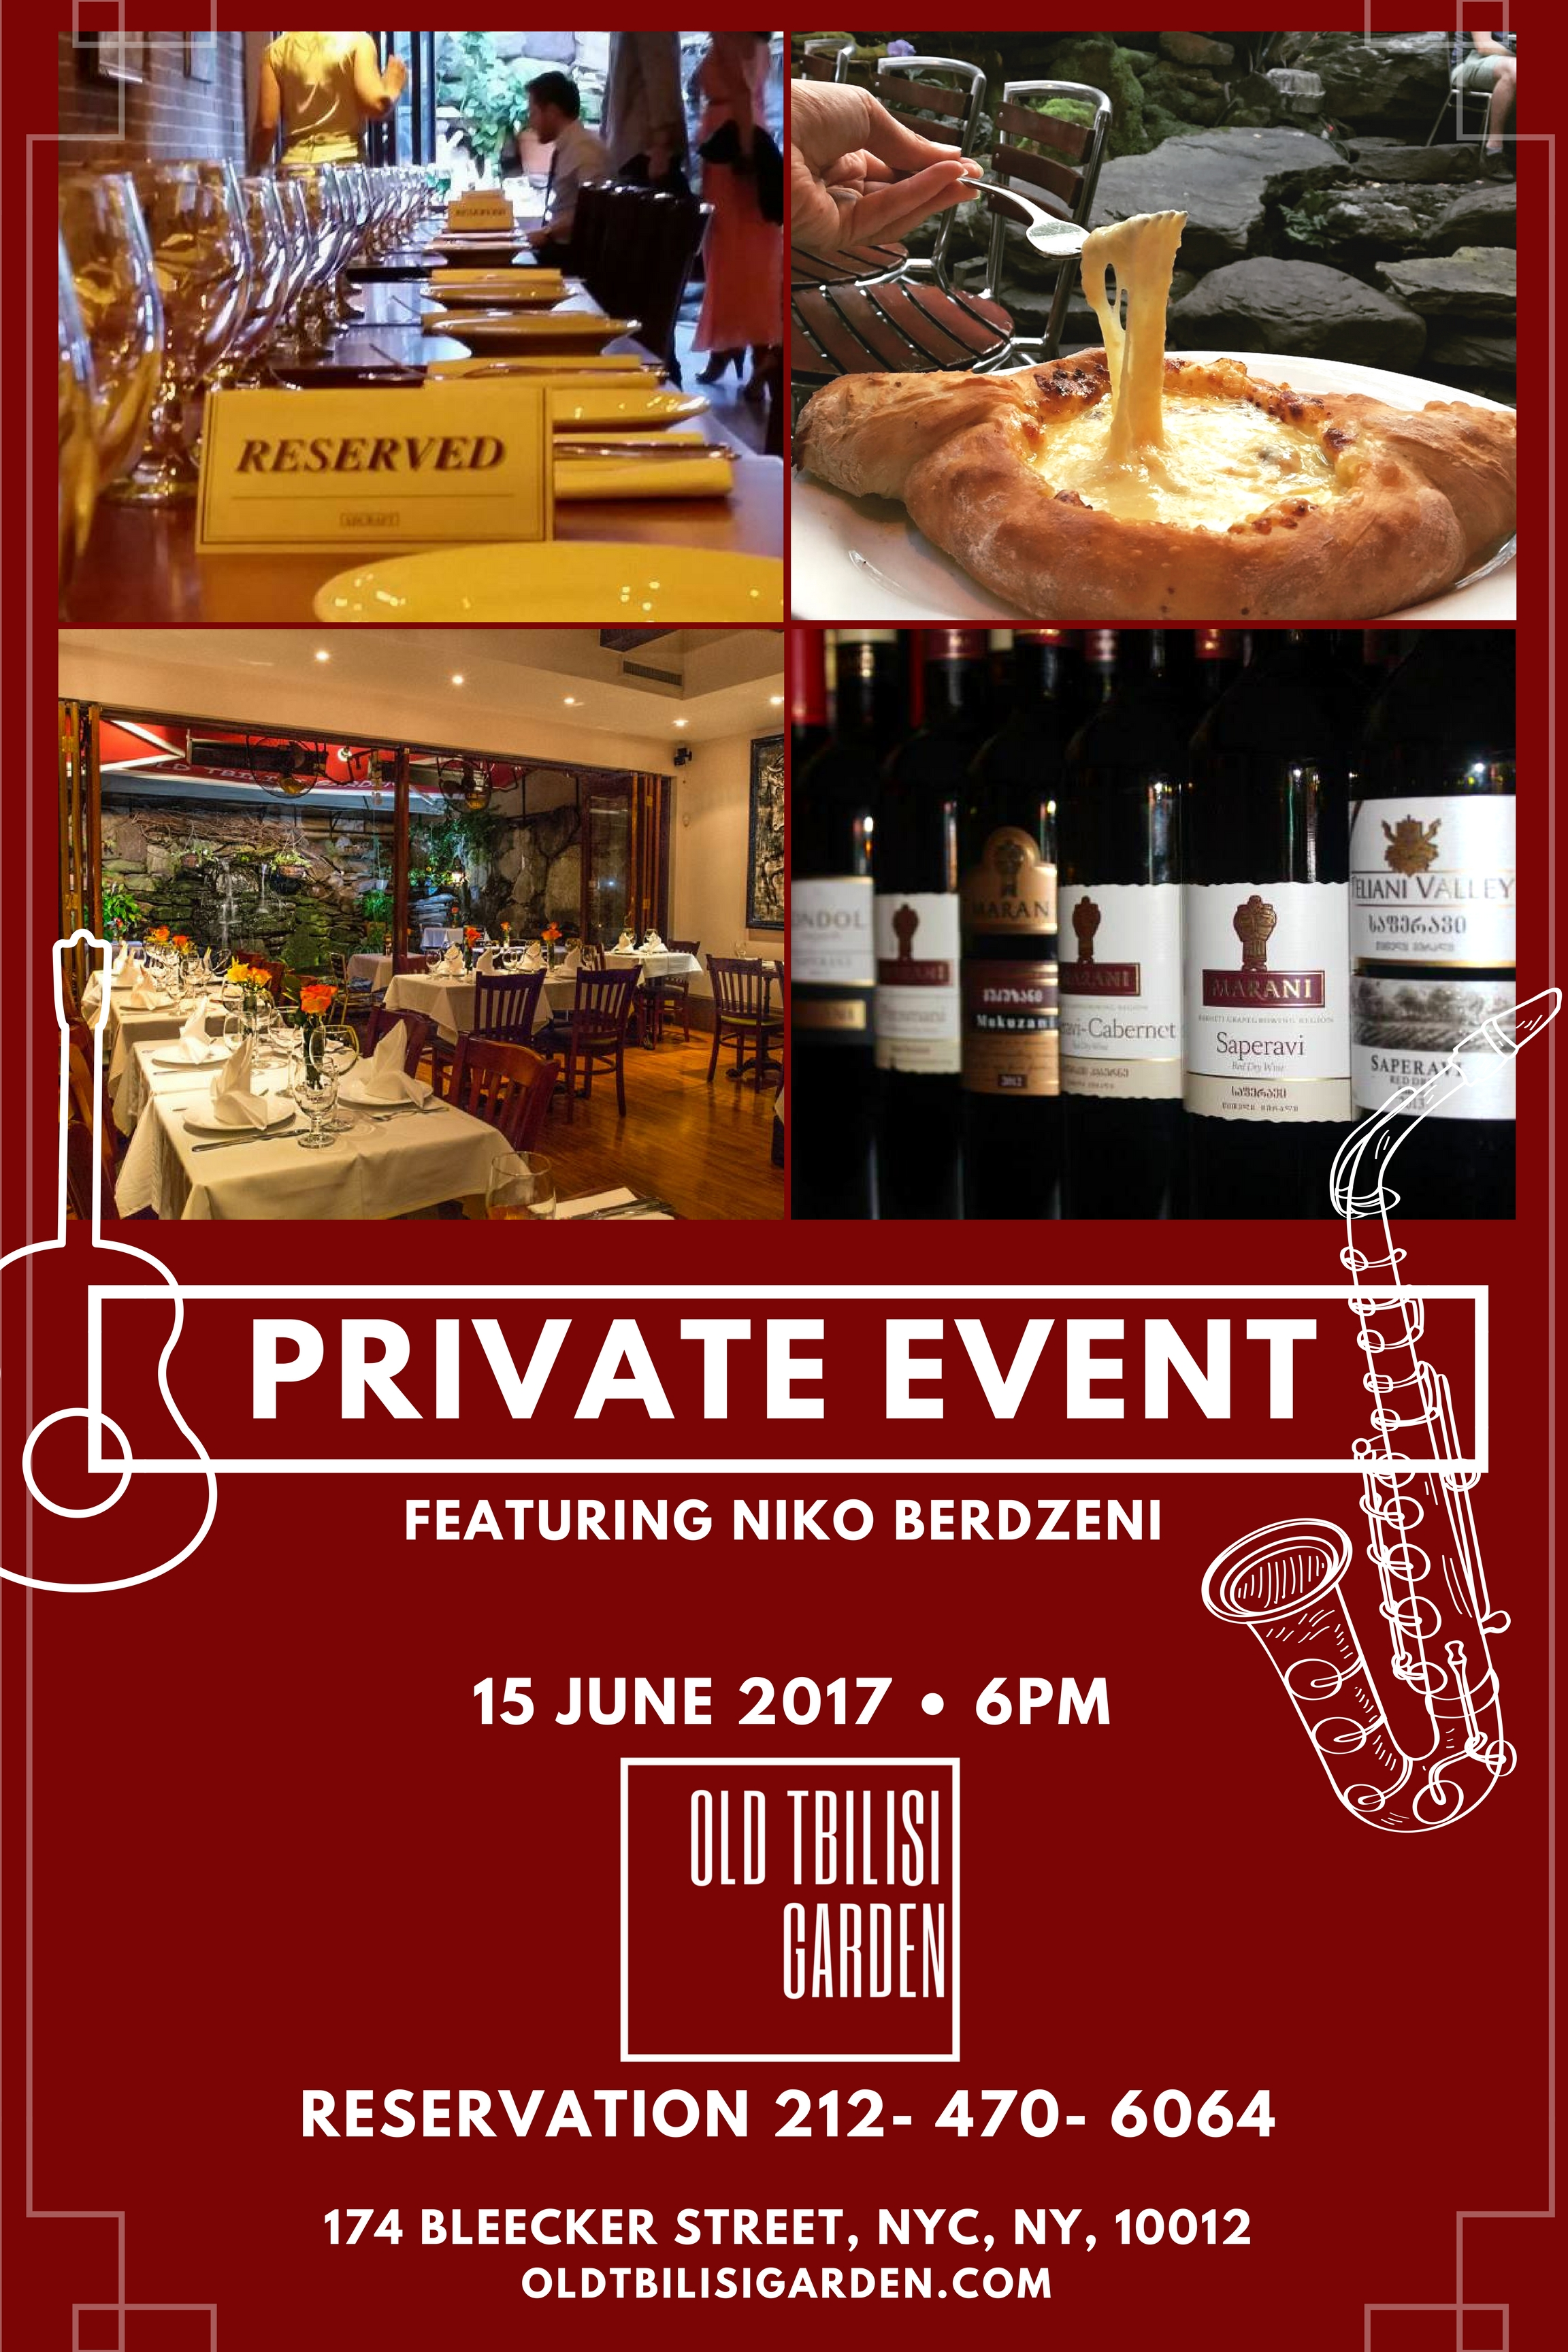 Pirvate Event Feat. Niko Berdzeni (06/15/2017) - Call (212) 470-6064 during the business hours for reservation.Come join us for a great a Georgian Feast on 06/15 Thursday! Starting at 6pm! This is a Reservation only event! LIMITED SEATS! Admission is FREE while dinning at the restaurant.This will be a celebration night! One Time Only.Featuring Niko Berdzeni and his friends (Adam Klipple, Alistair Sim and Dylan Hicks)